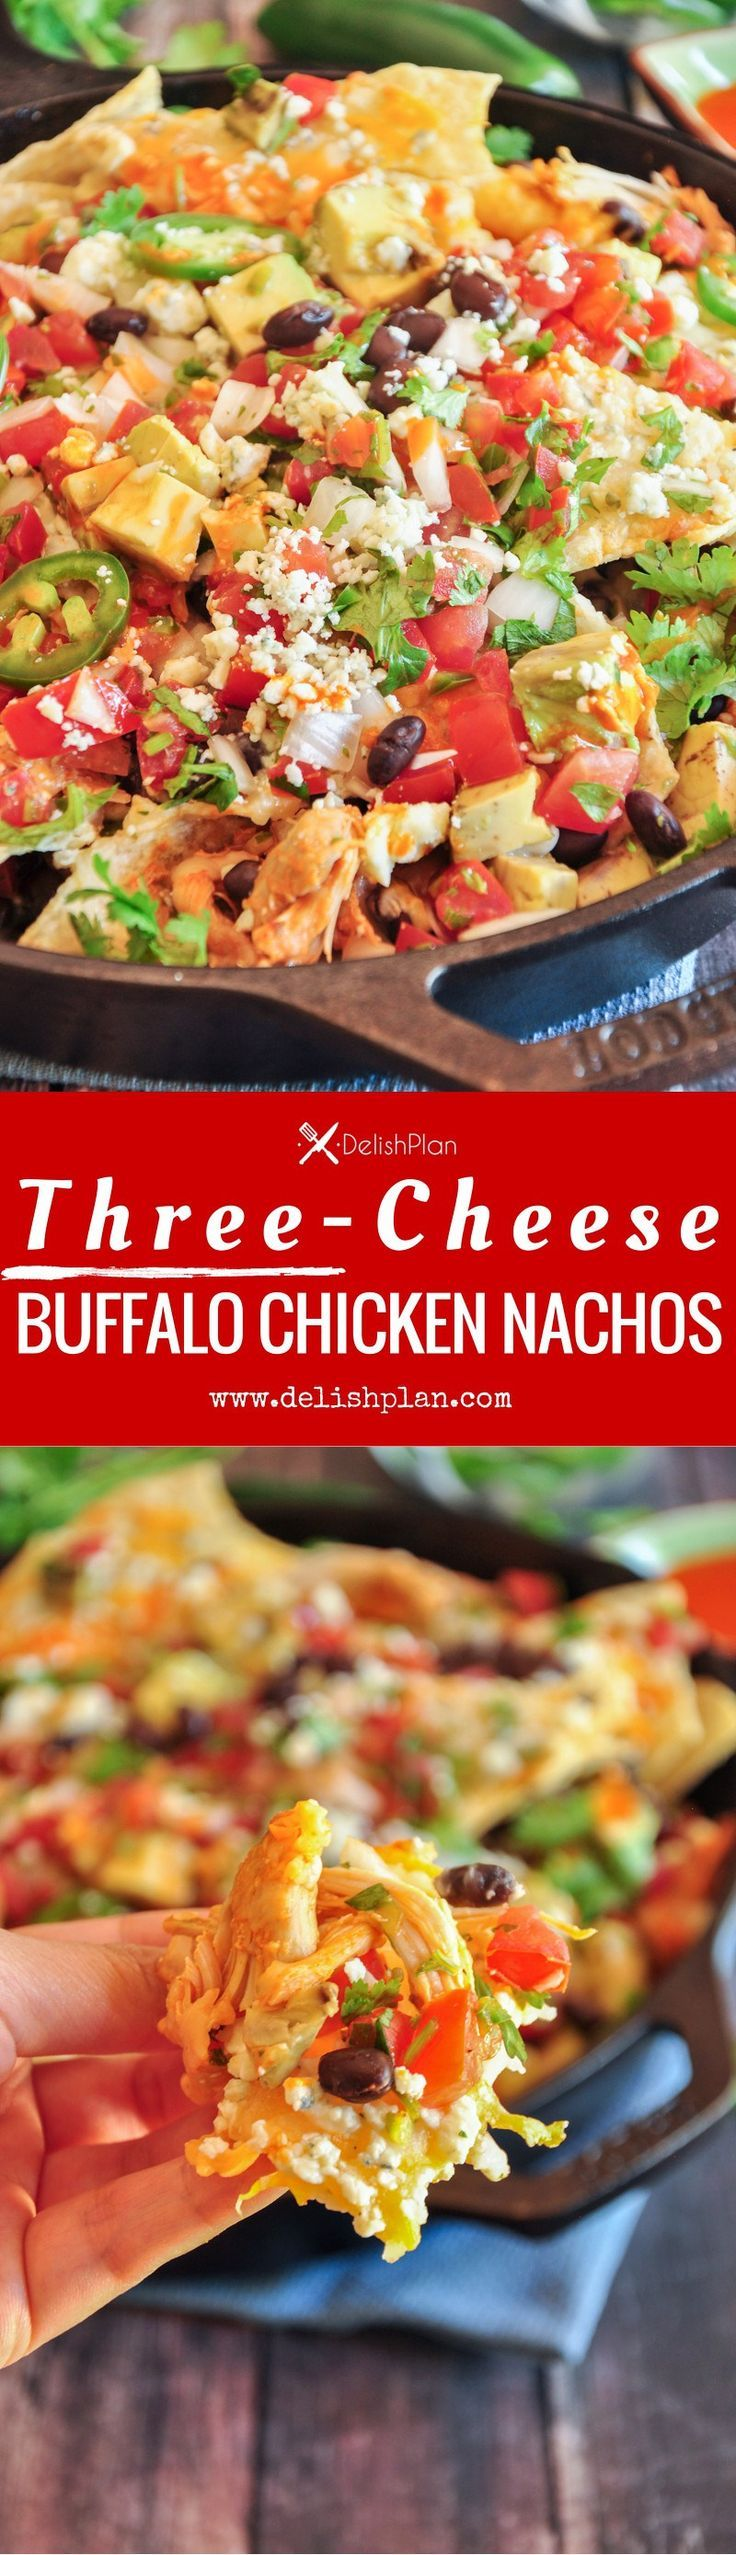 Buffalo chicken nachos cheesed up with cheddar, Monterey Jack cheese and blue cheese and loaded with pico and avocados Read more at  http://www.delishplan.com/three-cheese-buf��o-chicken-nachos/ ��